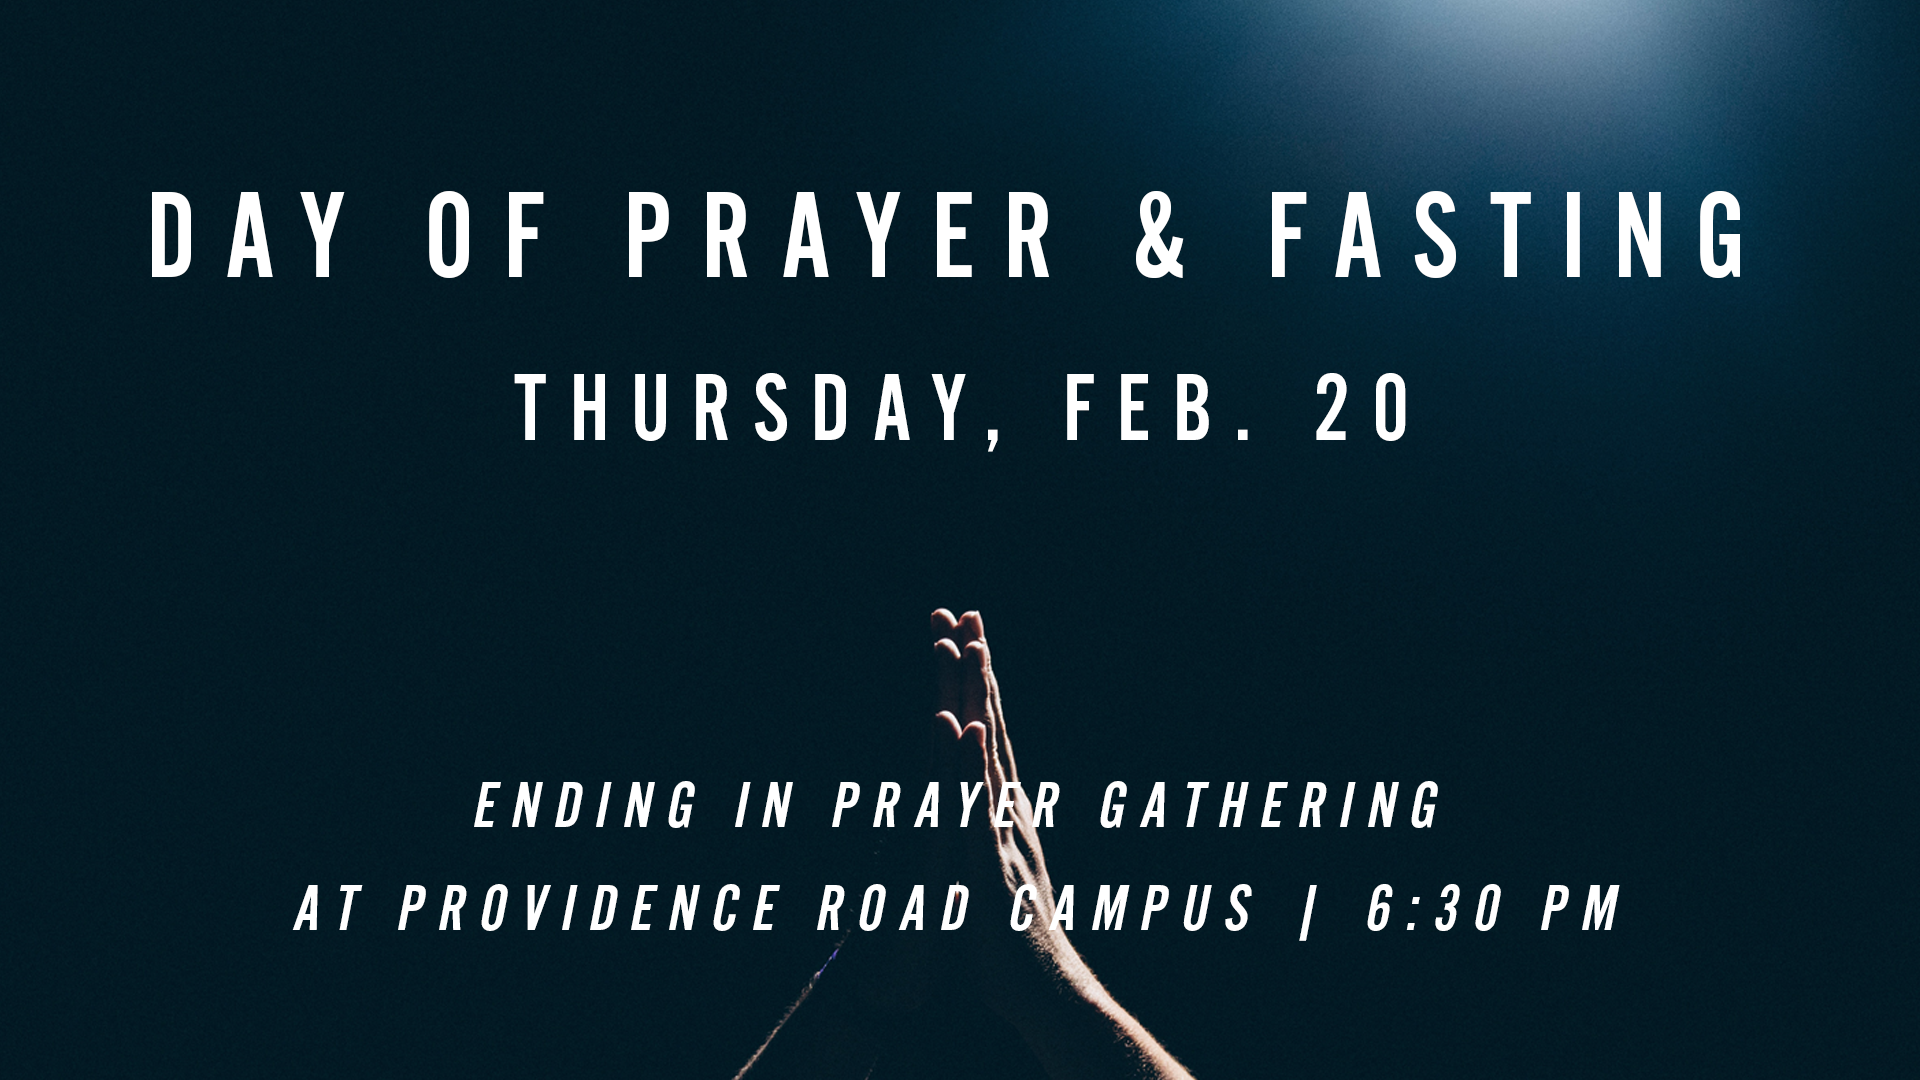 Day of Prayer & Fasting